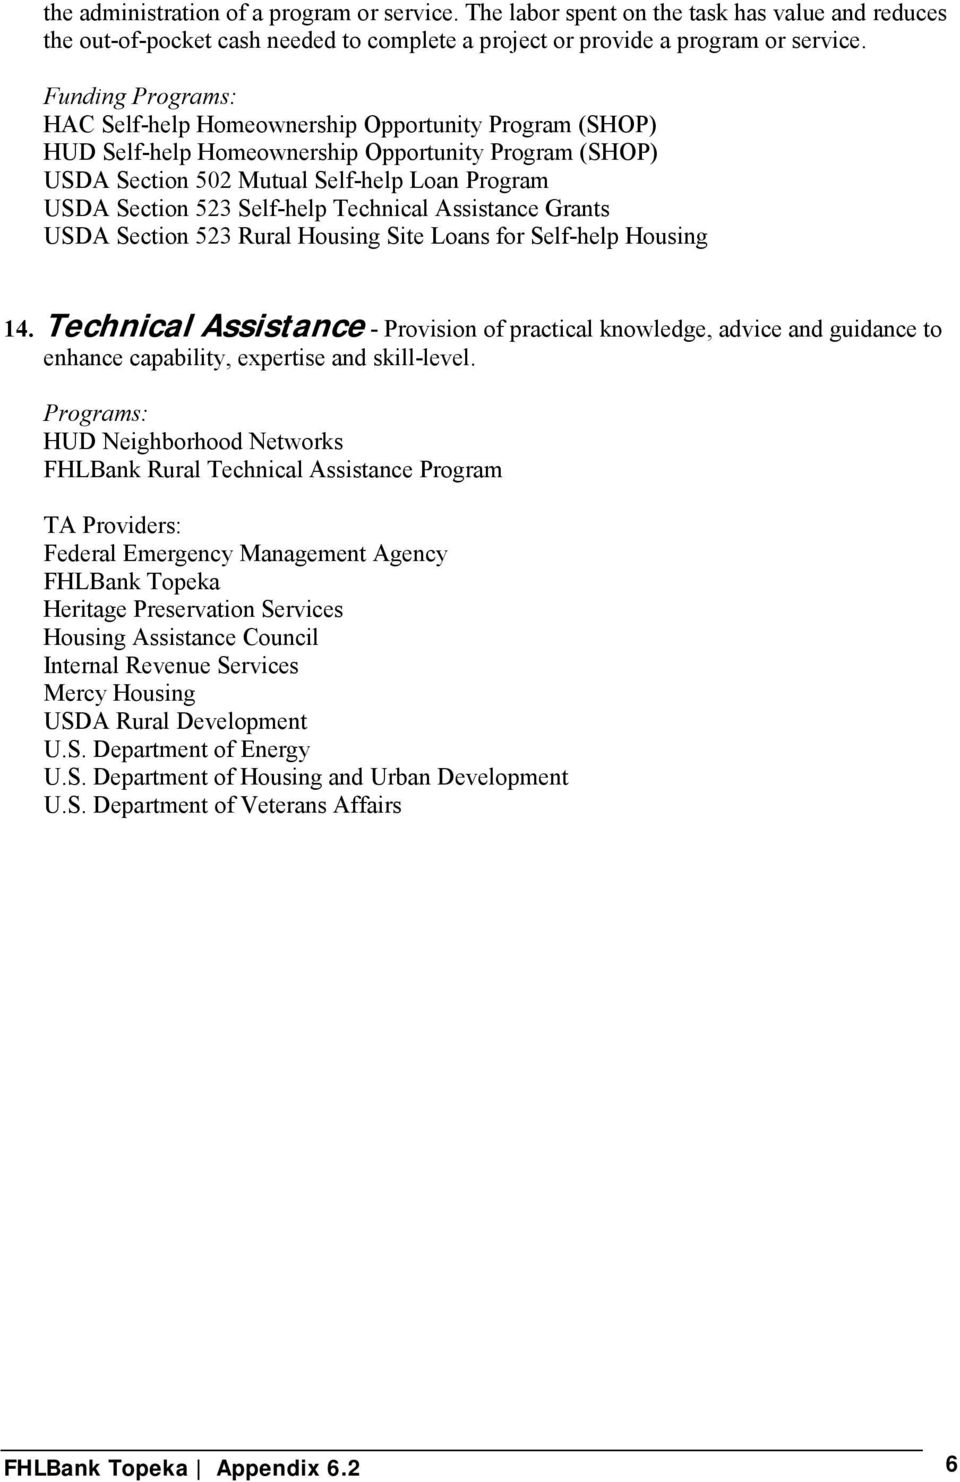 Technical Assistance - Provision of practical knowledge, advice and guidance to enhance capability, expertise and skill-level.